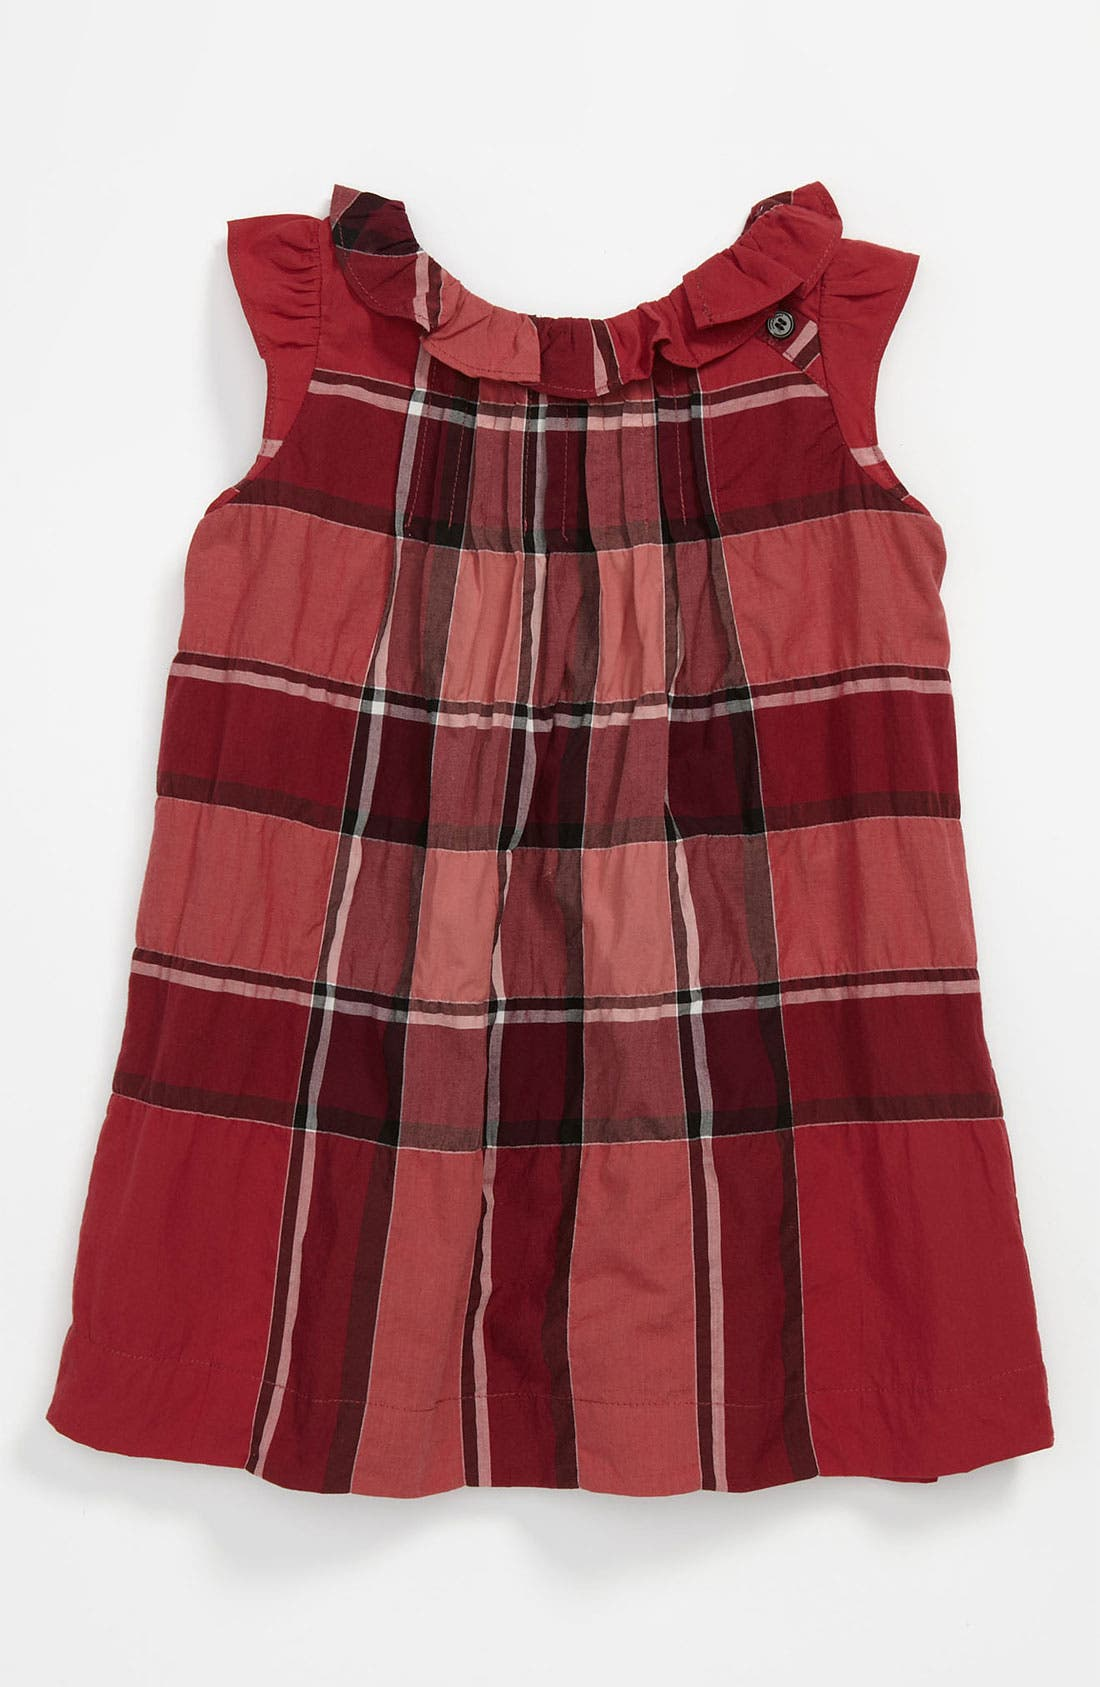 Alternate Image 1 Selected - Burberry 'Olly' Check Print Dress (Baby)